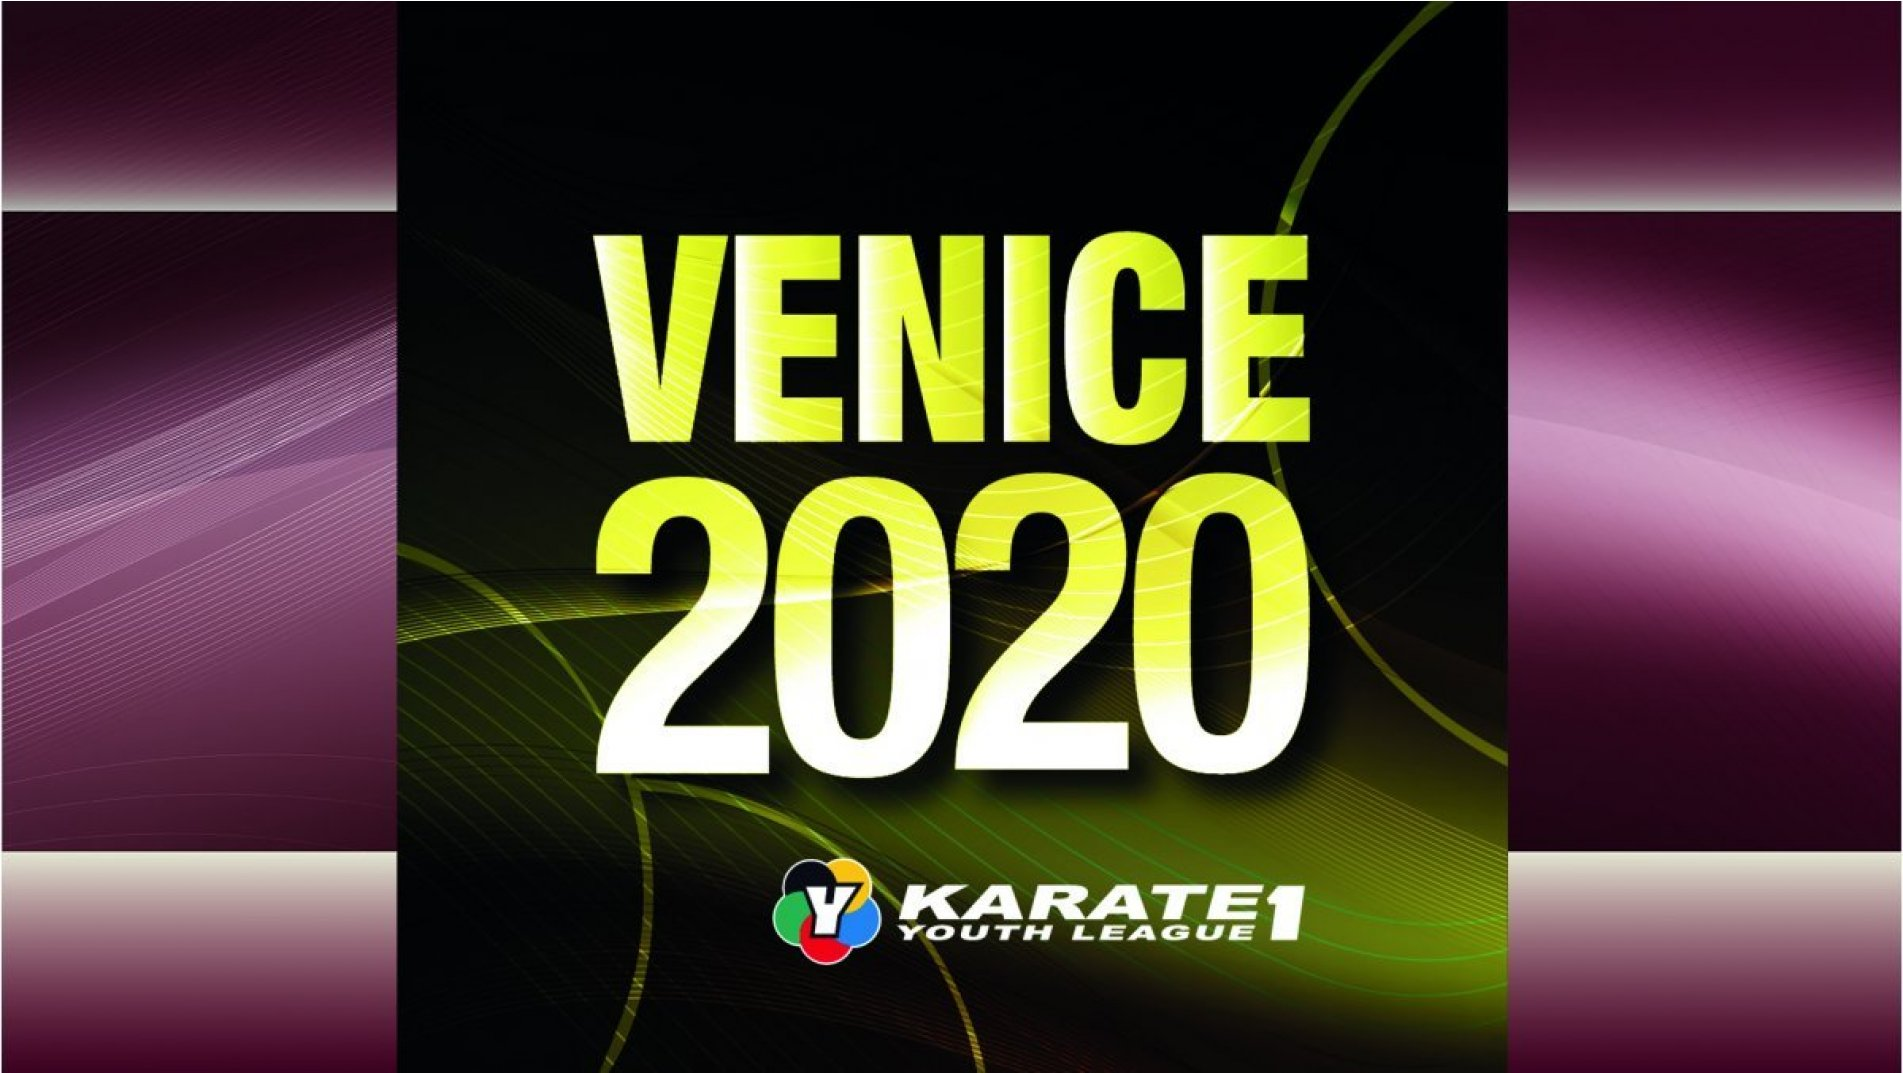 Karate 1 Youth League Venice cancelled